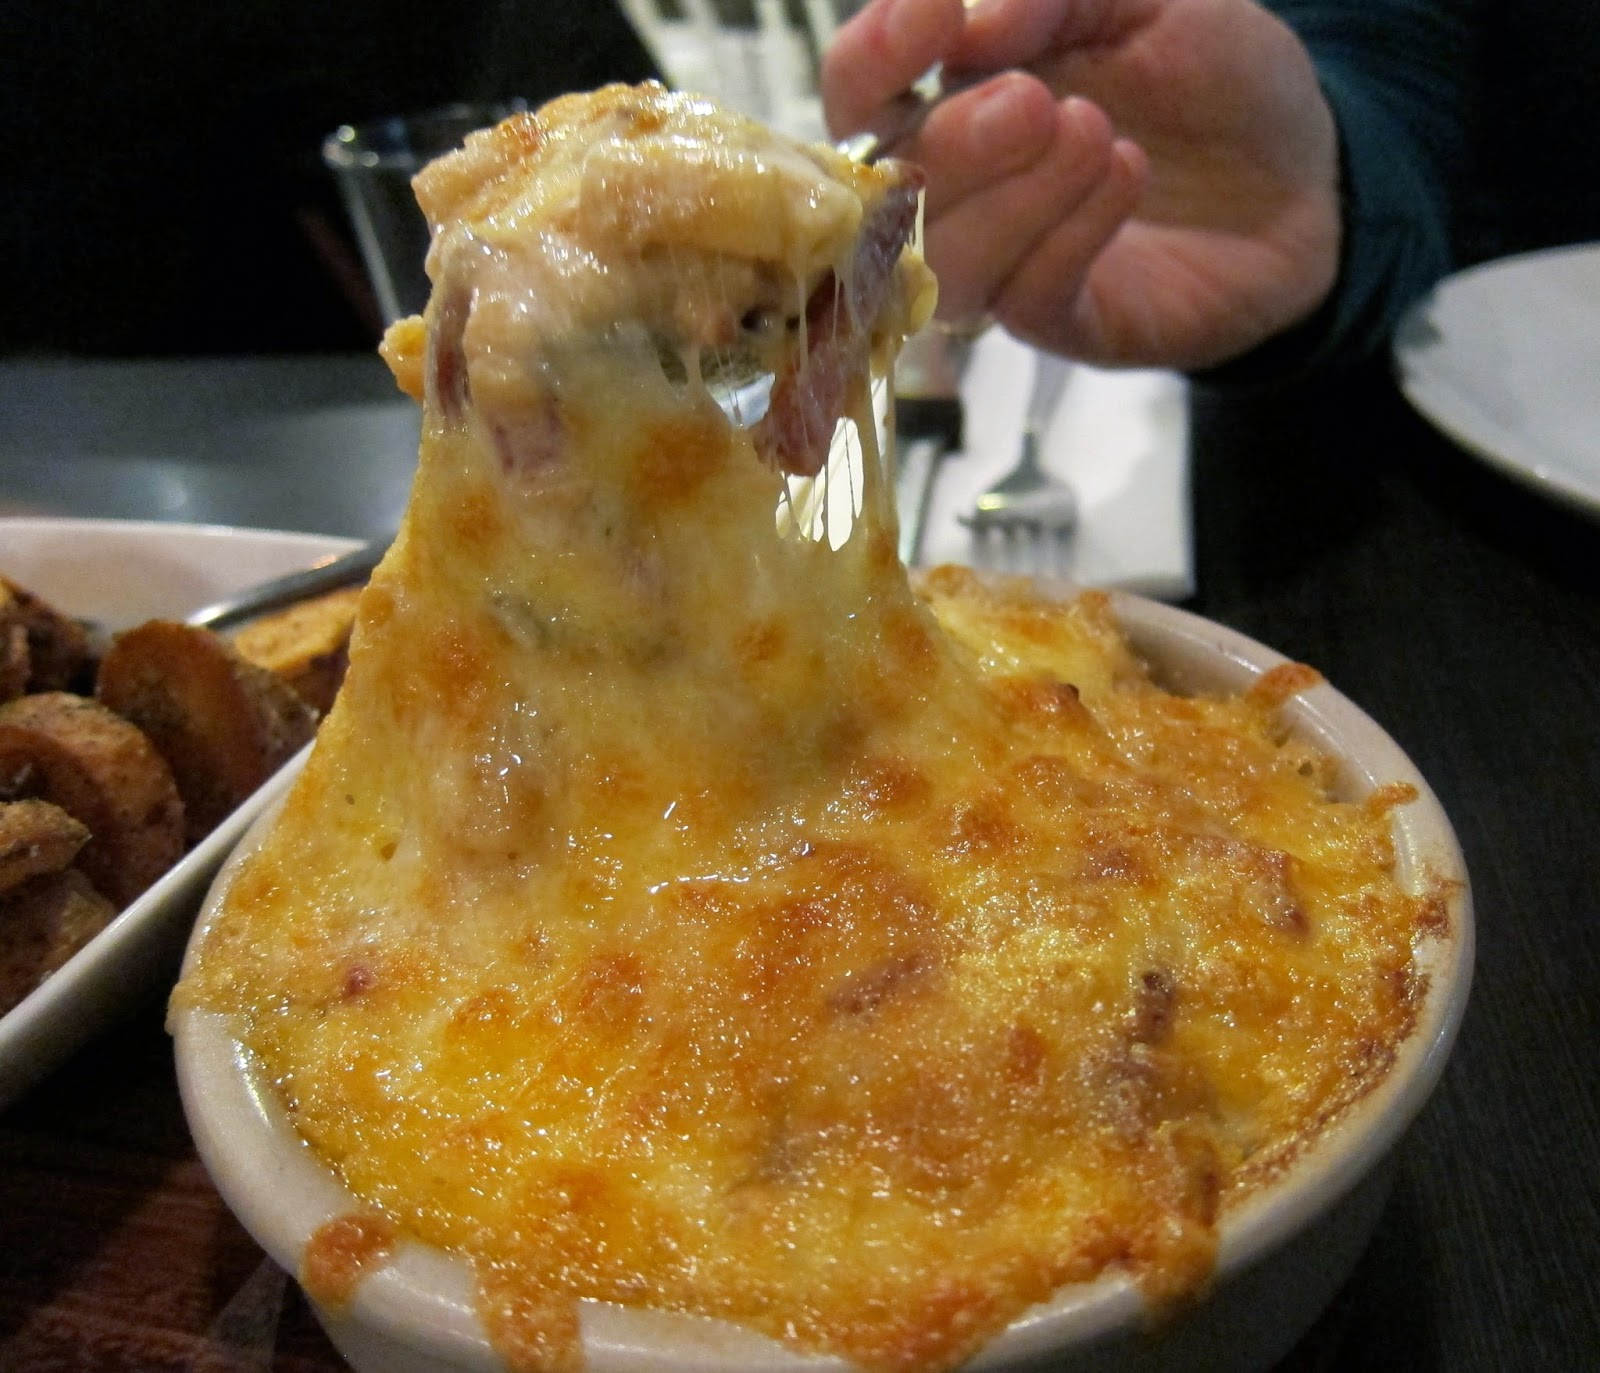 Smoked mac and cheese food porn third wave prahran